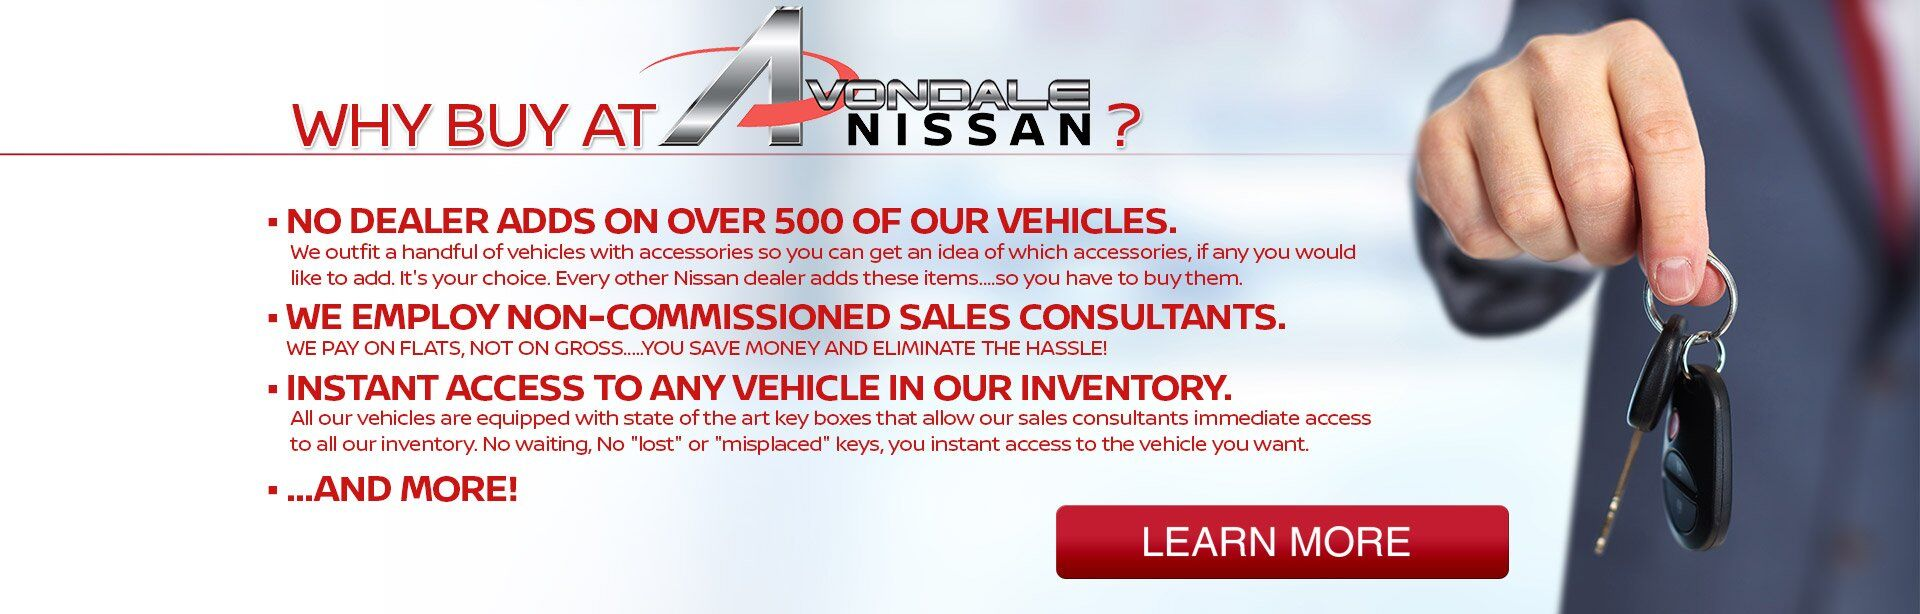 Why Buy At Avondale Nissan?